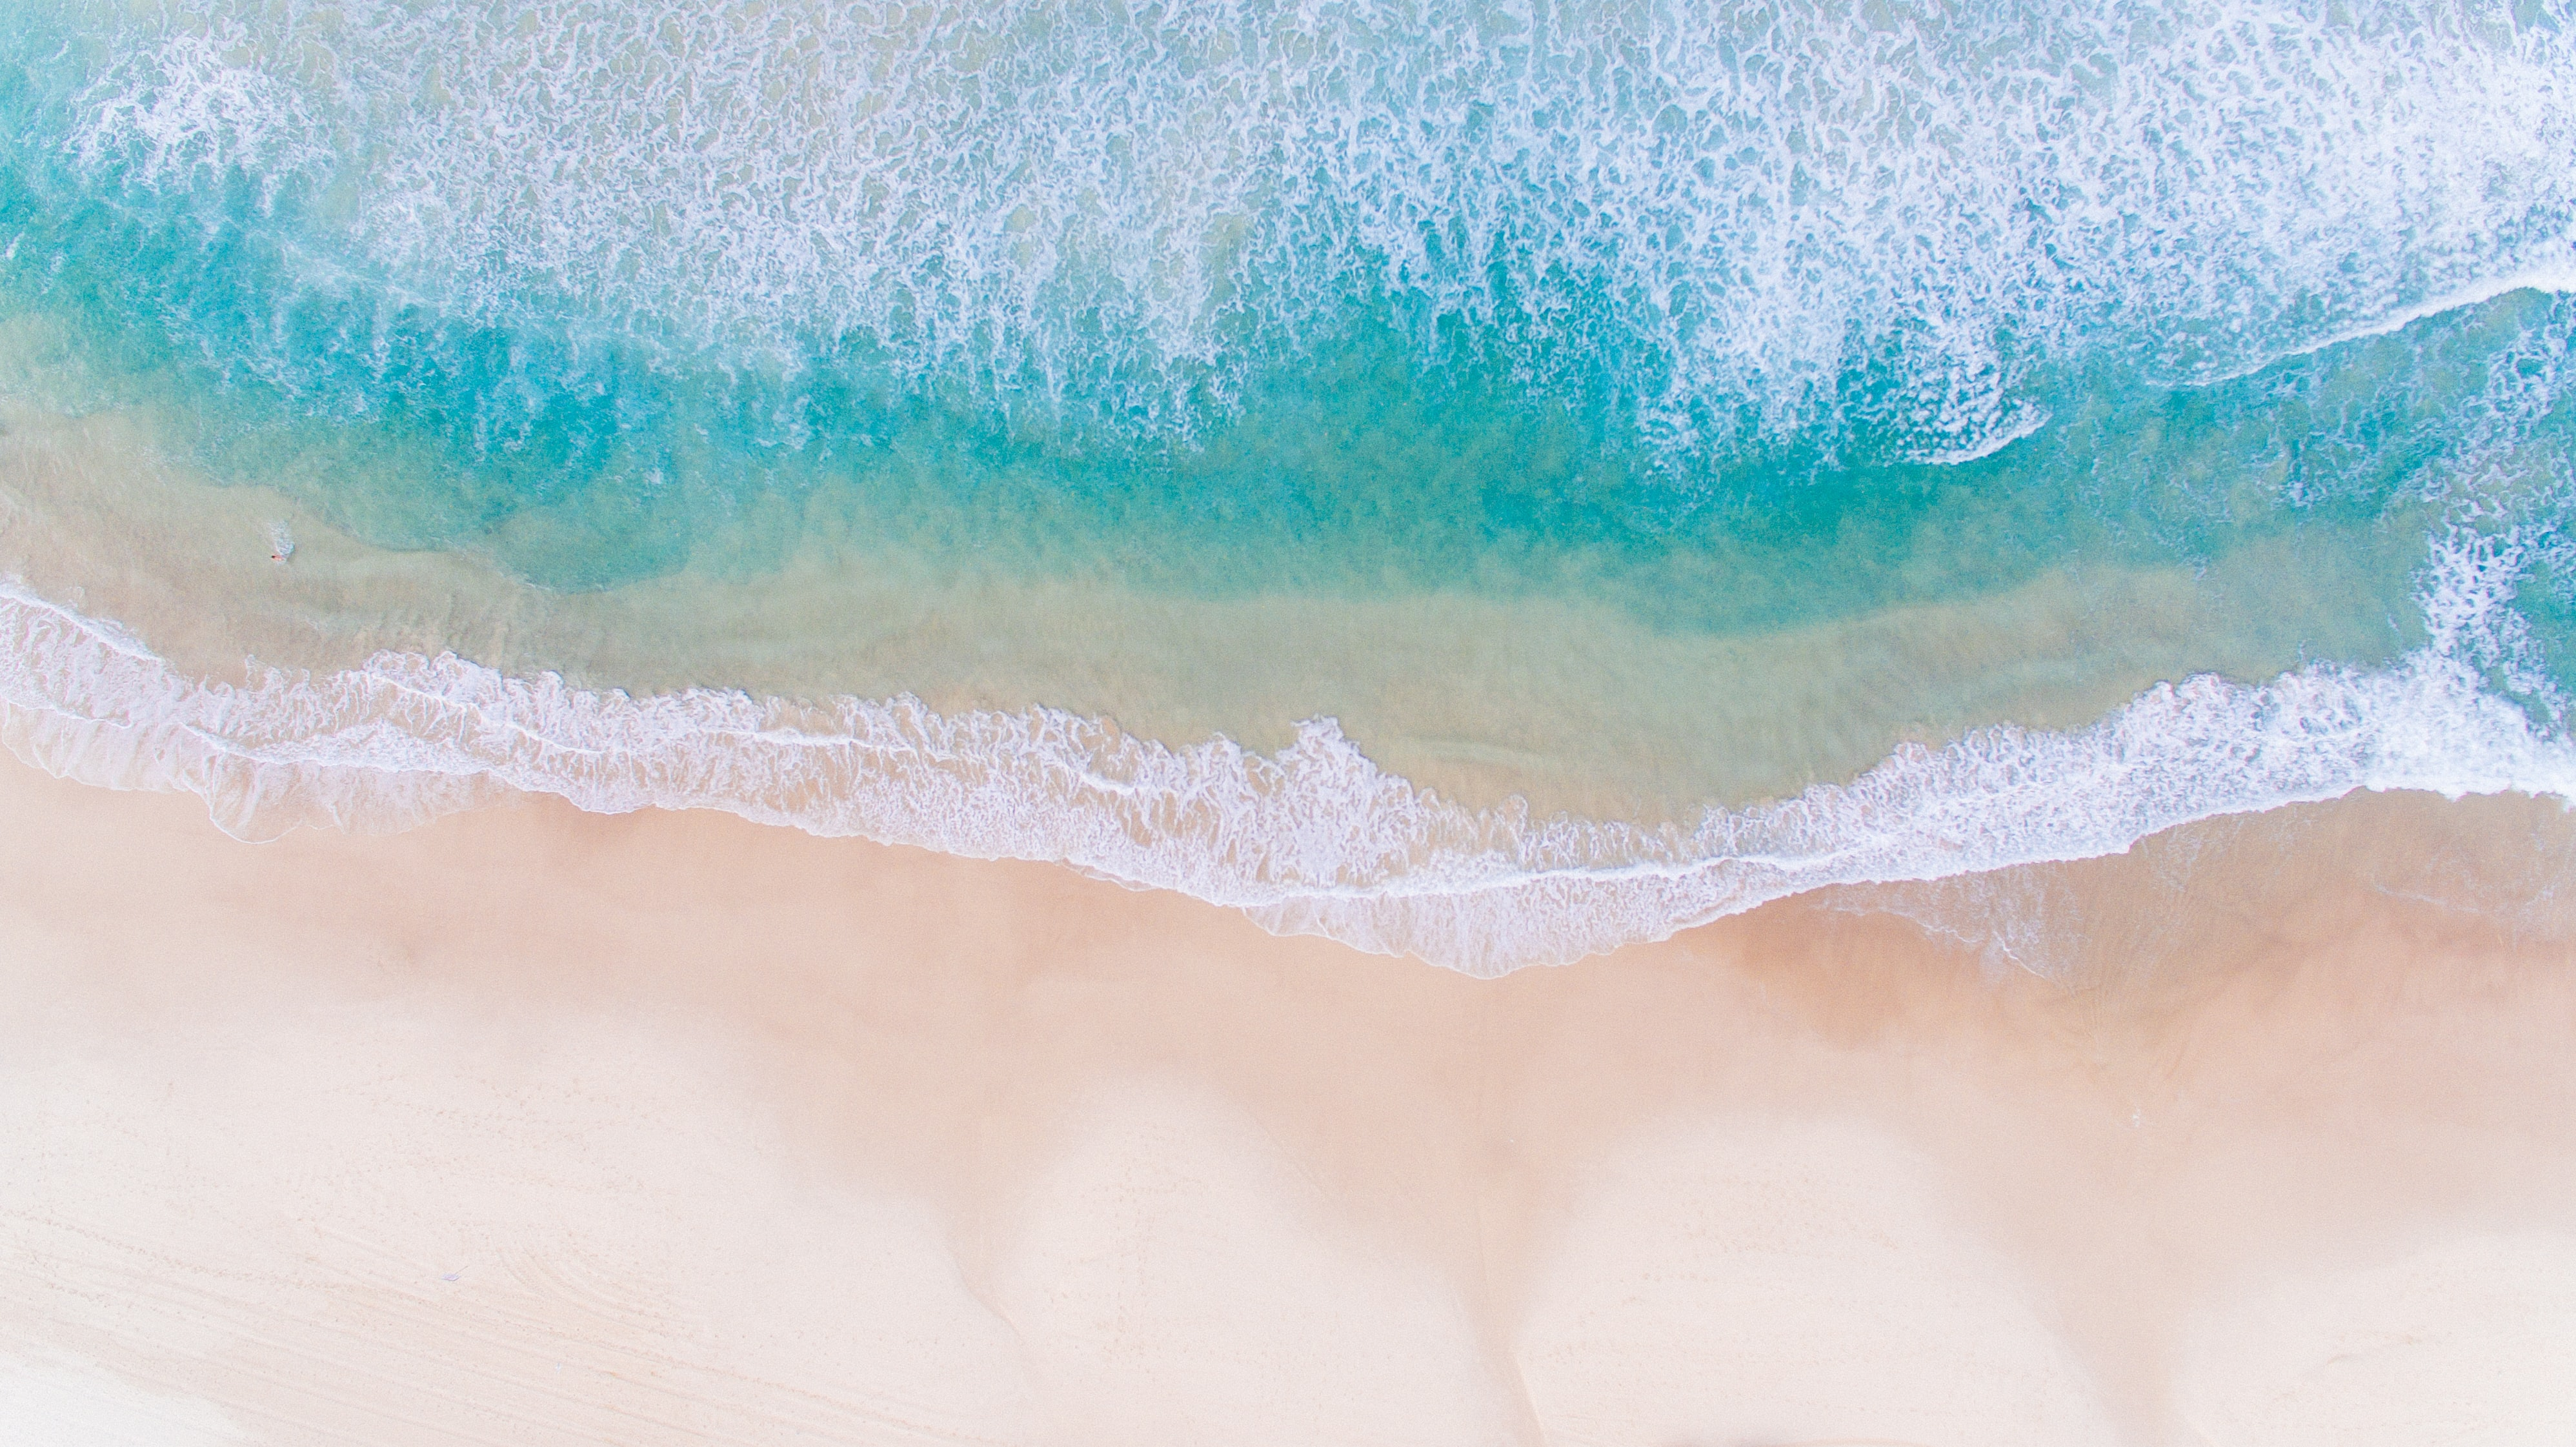 Drone view of the ocean washing on the Bondi Beach, New South Wales, Australia